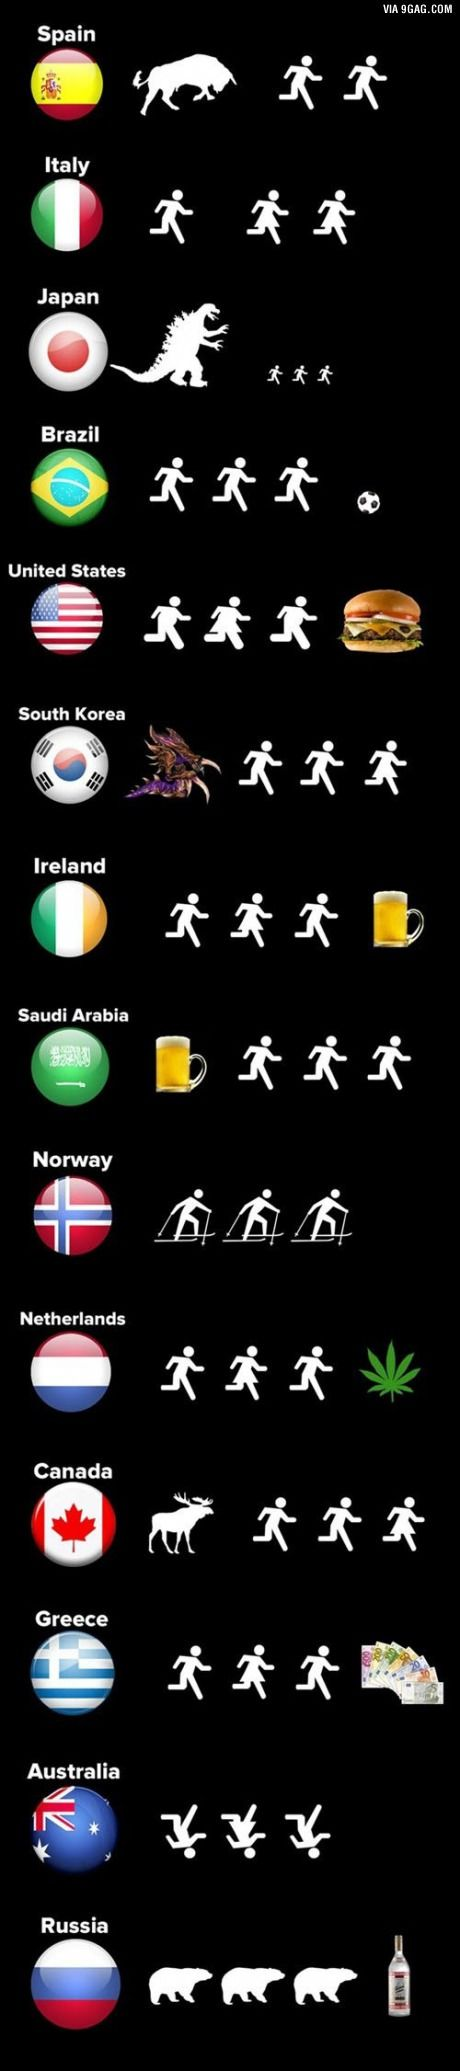 Why people run in different countries? #9Gag #funny #humor #InspiredTraveller #travel